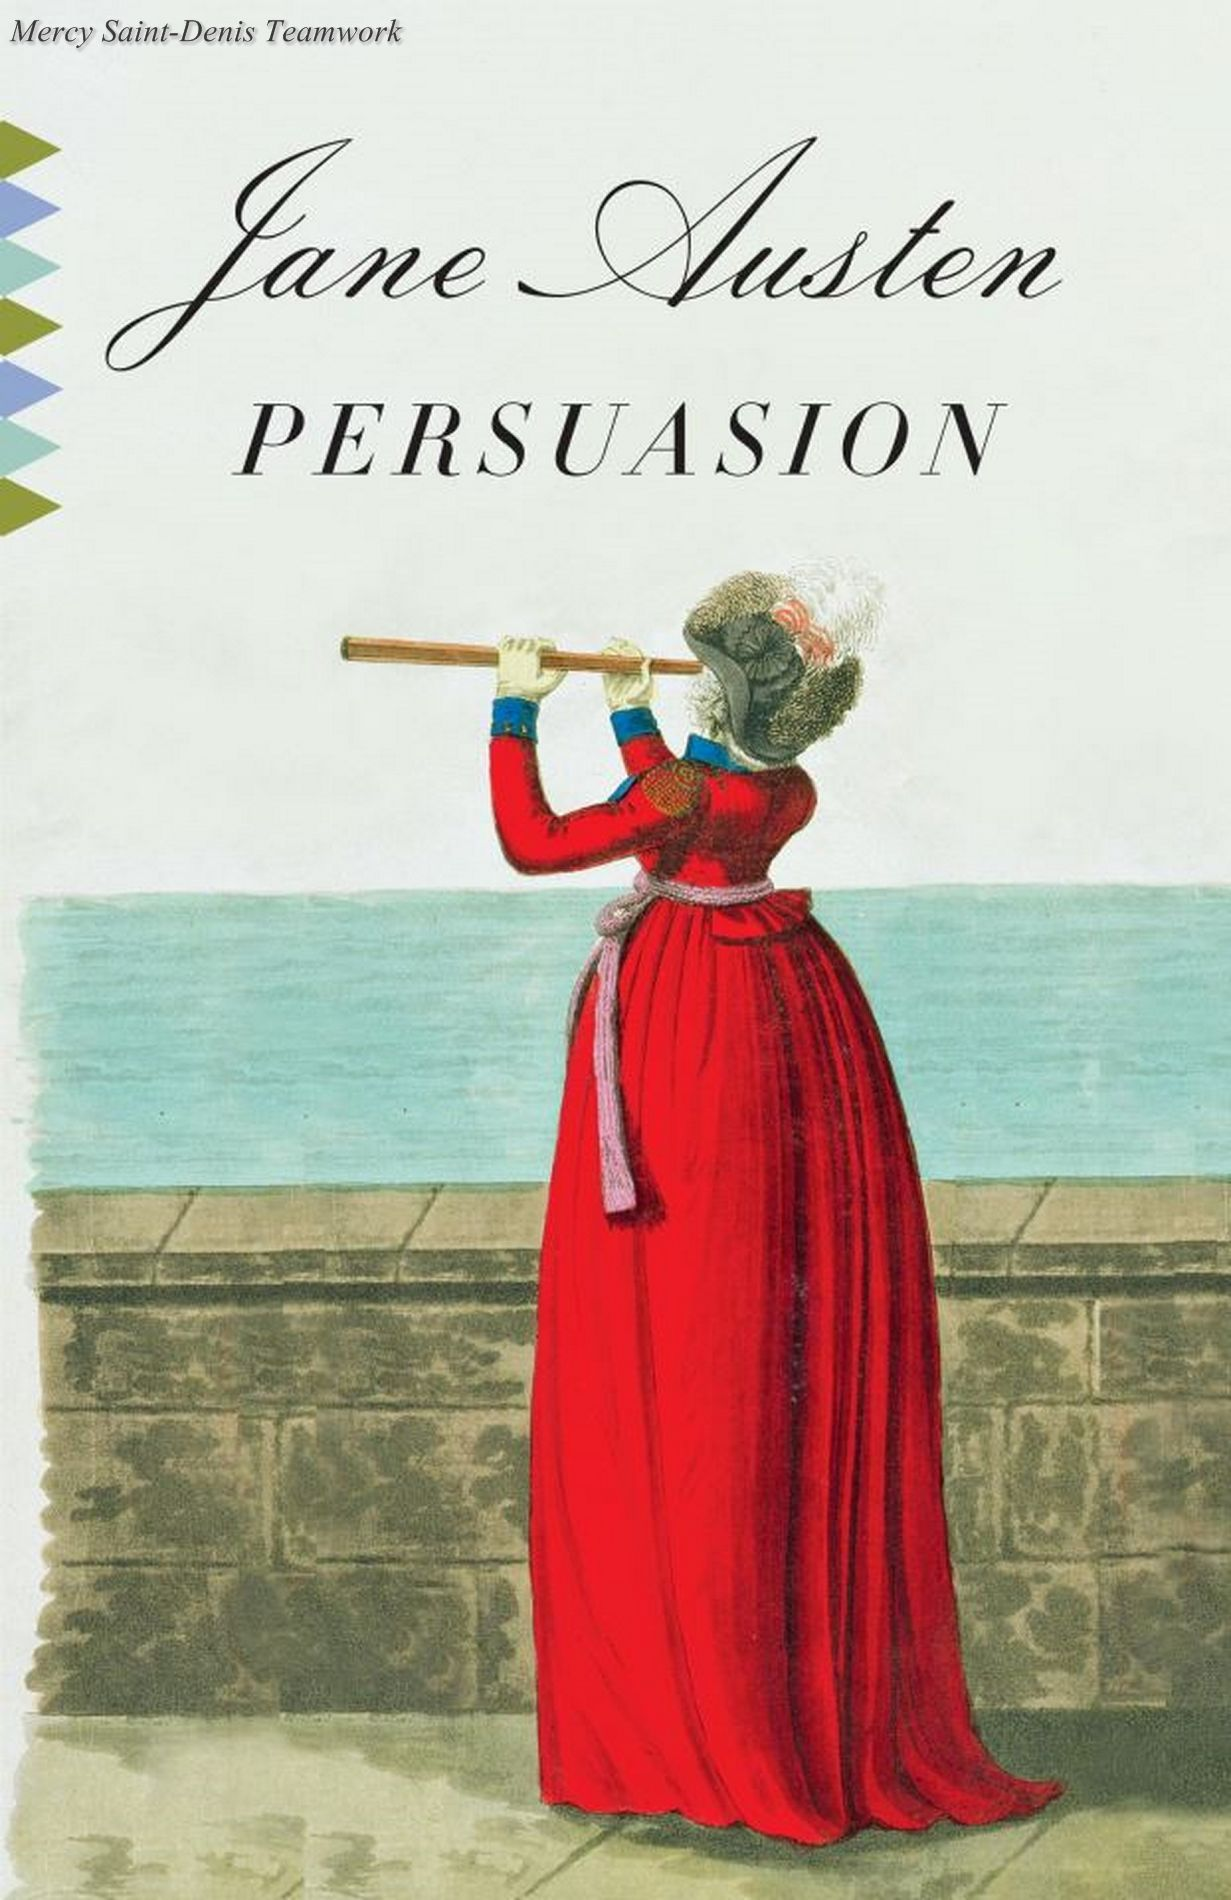 jane austen persuasion Persuasion by jane austen, julian cowley twenty-seven-year old anne elliot is austen's most adult heroine eight years before the story proper begins, she is happily betrothed to a naval officer, frederick wentworth, but she precipitously breaks off the engagement when persuaded by her friend lady russell that such a match is unworthy.